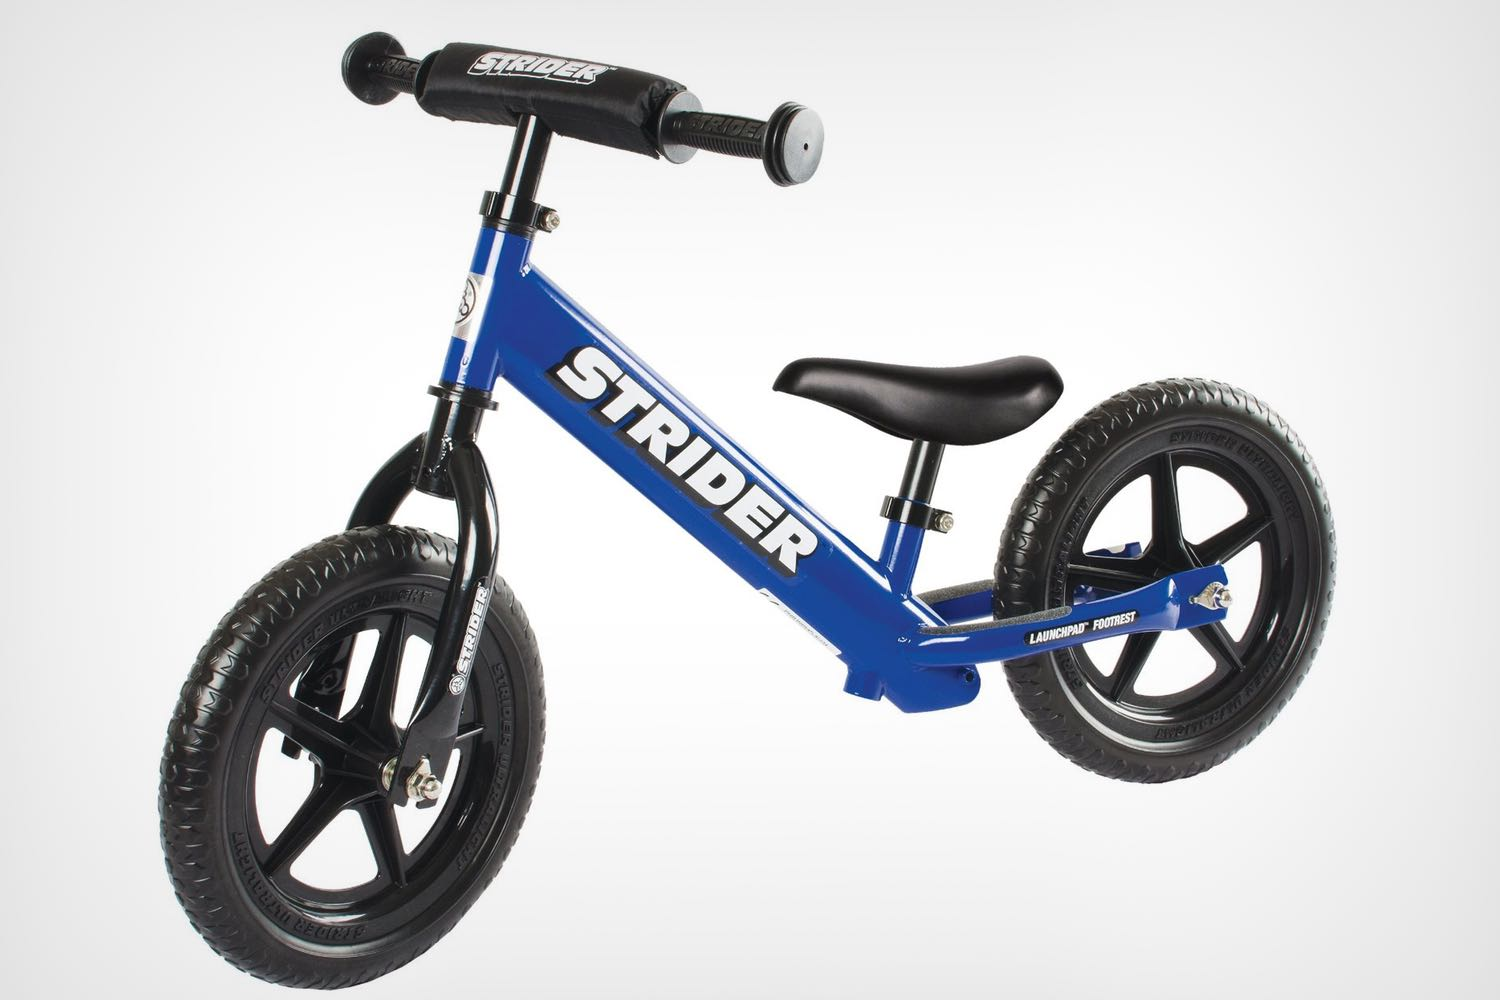 The Strider Balance bike for kids ($119)